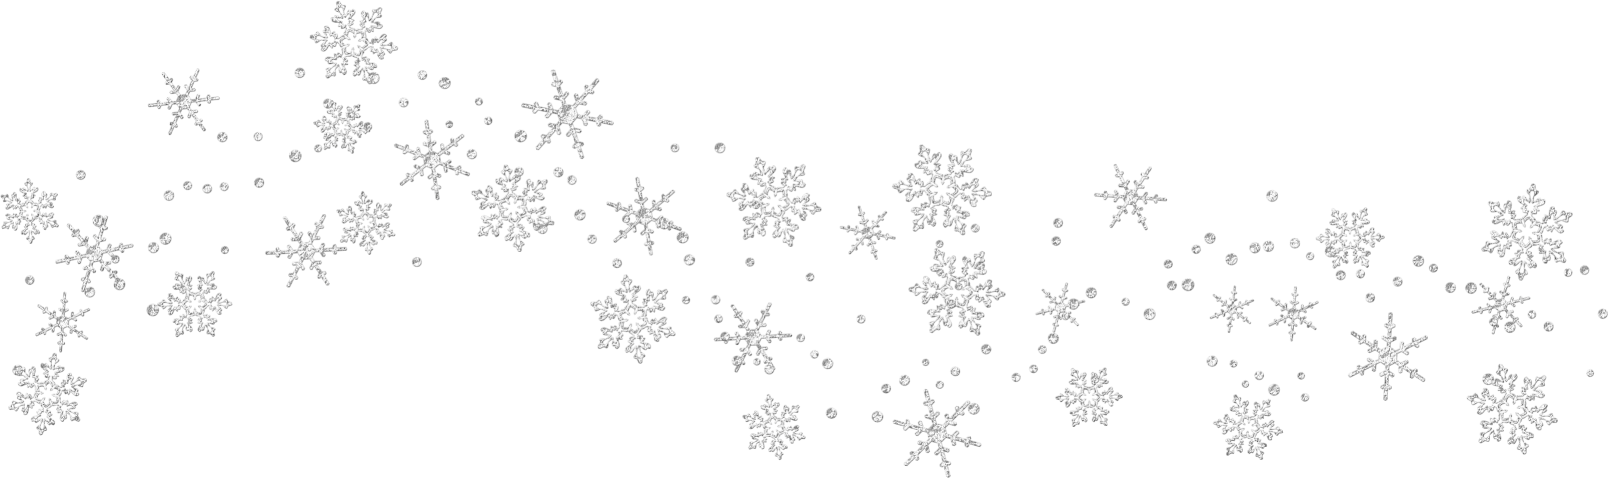 Snowflakes background png. Collection of free